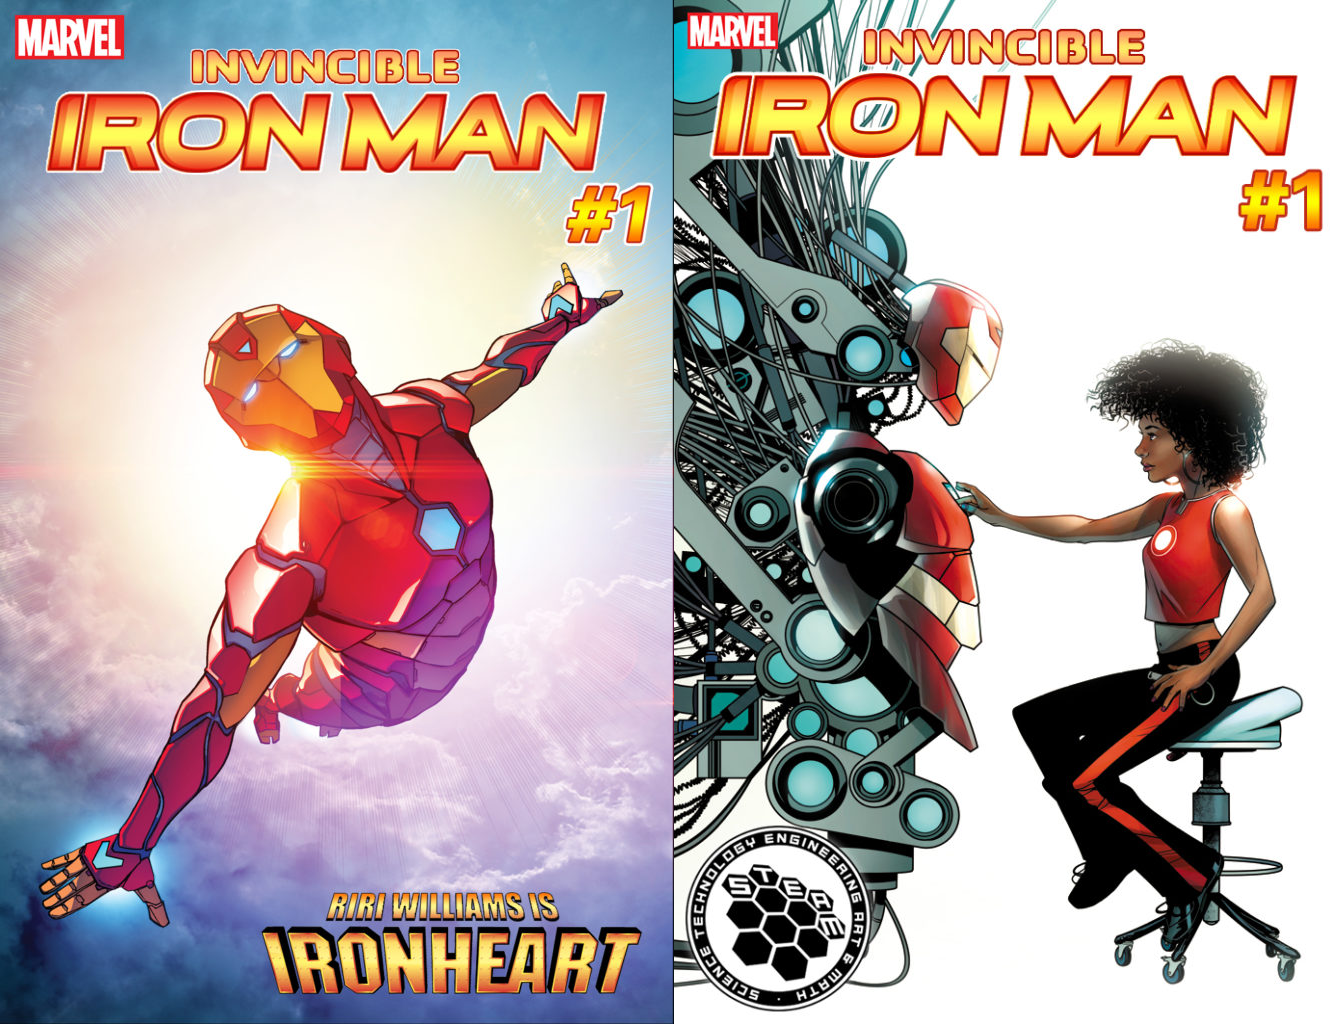 Bendis told comic book writer Joe Quesada about this plans for Riri and he proposed the name Ironheart, the name they ended up using. Image Source: The Verge